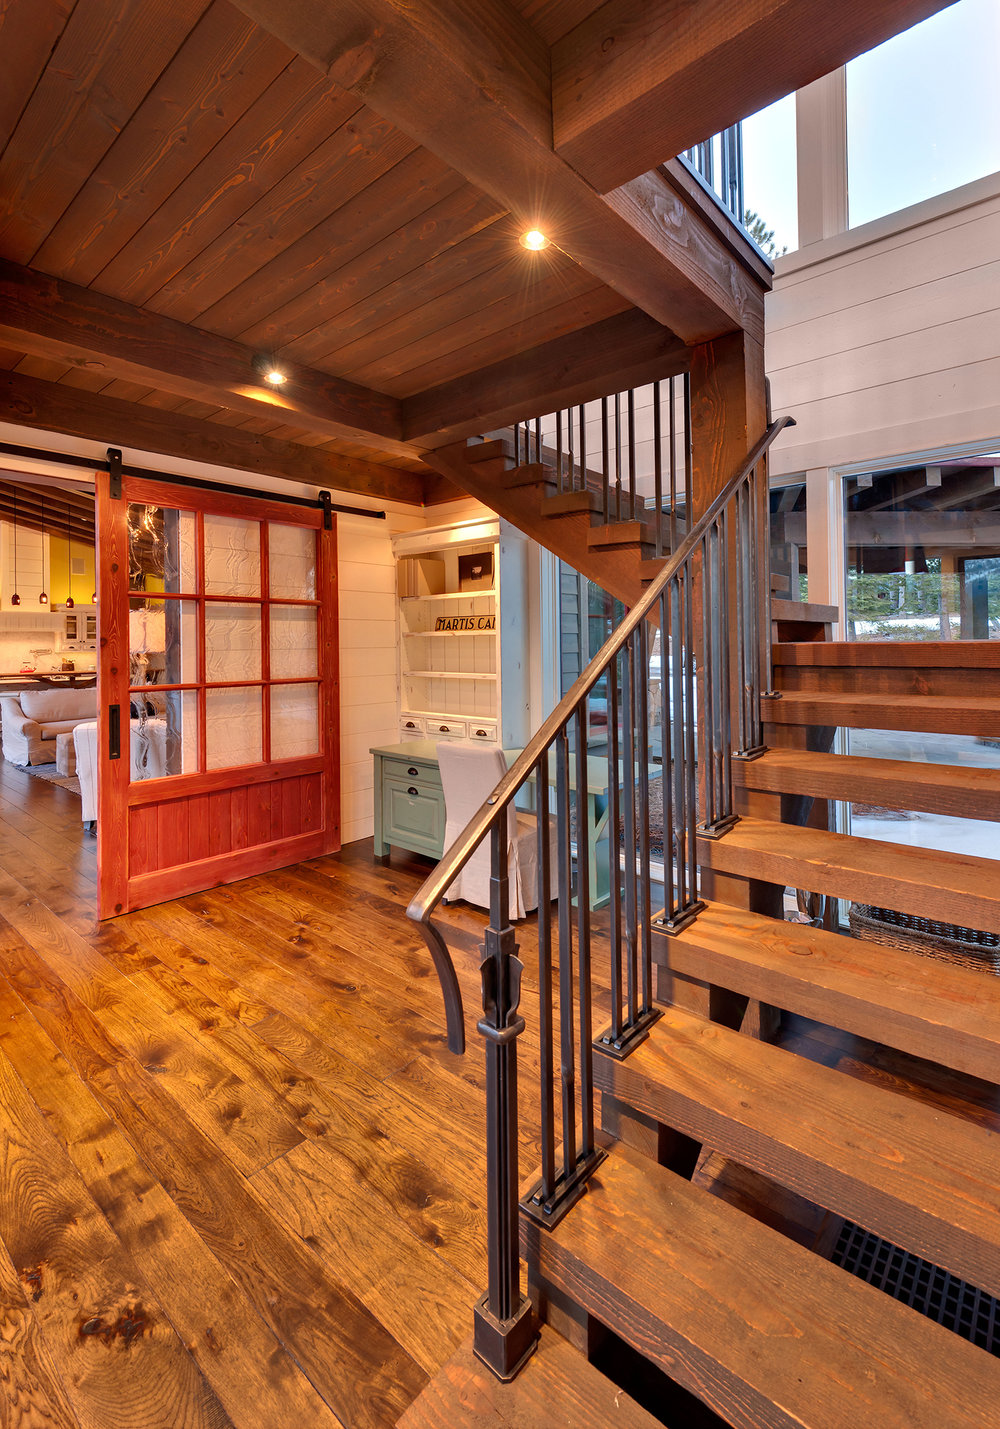 Lot 145_Staircase_Wood Paneling_Barn Door.jpg